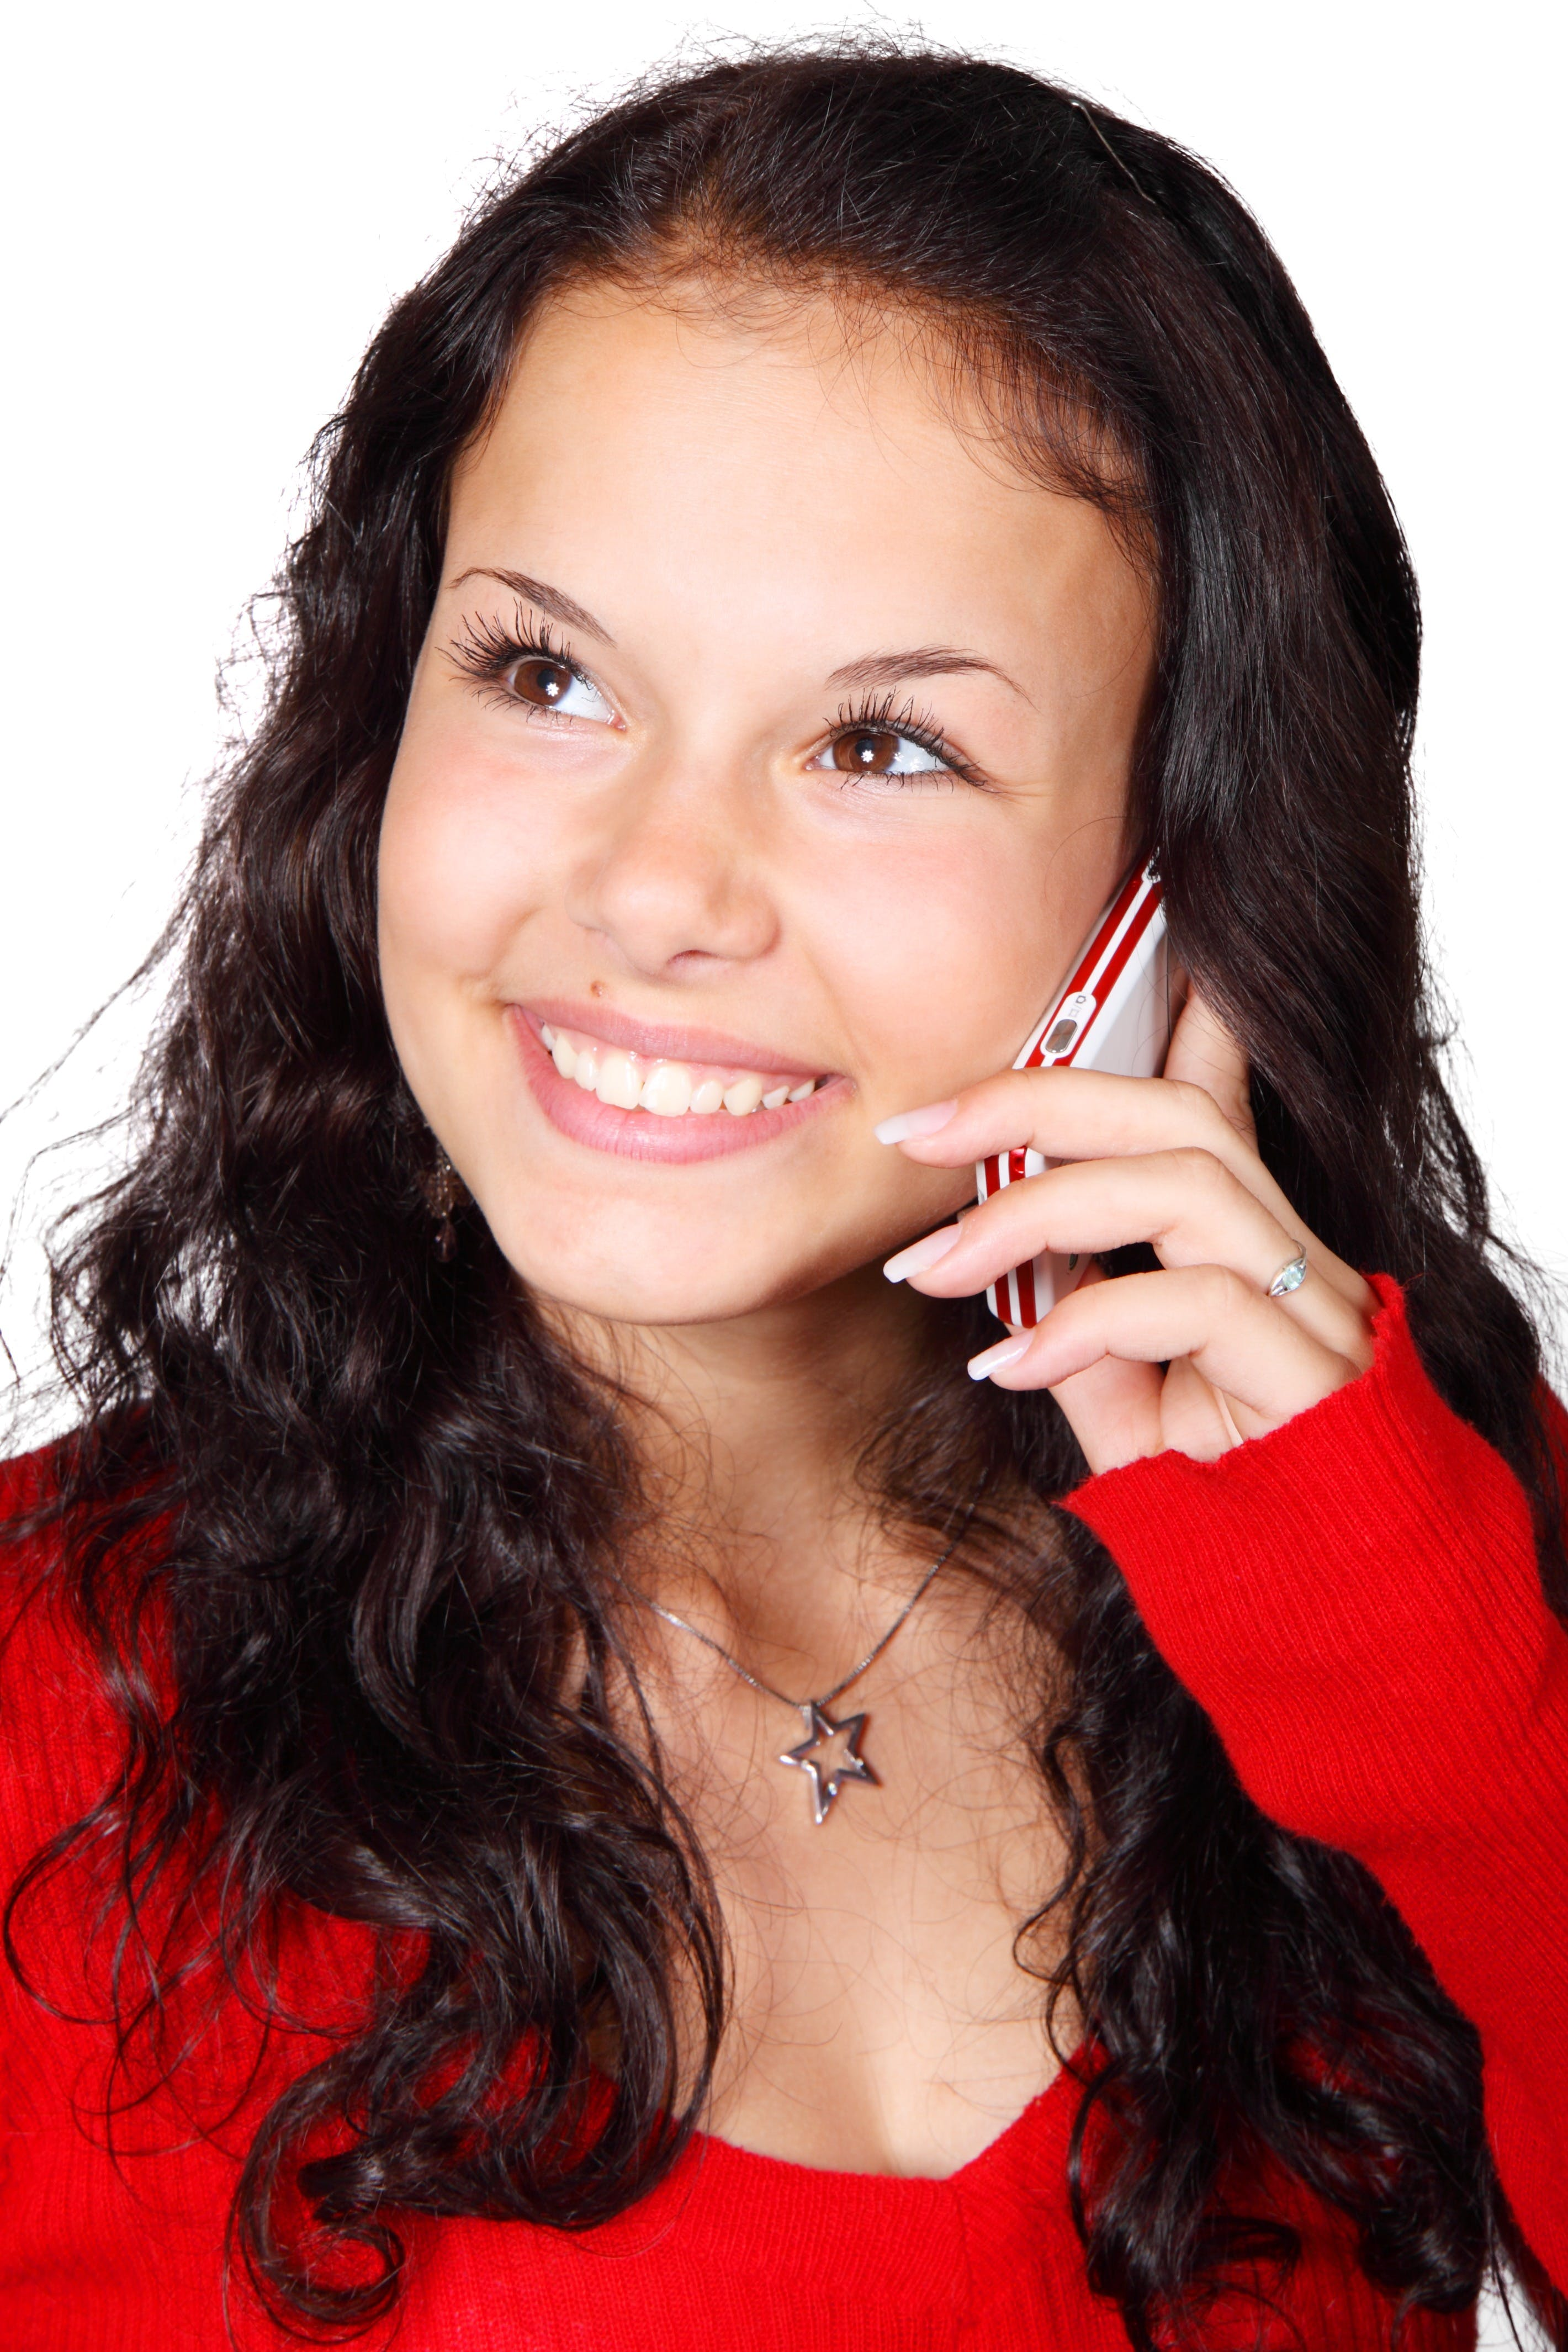 Free stock photo of woman, calling, young, happy